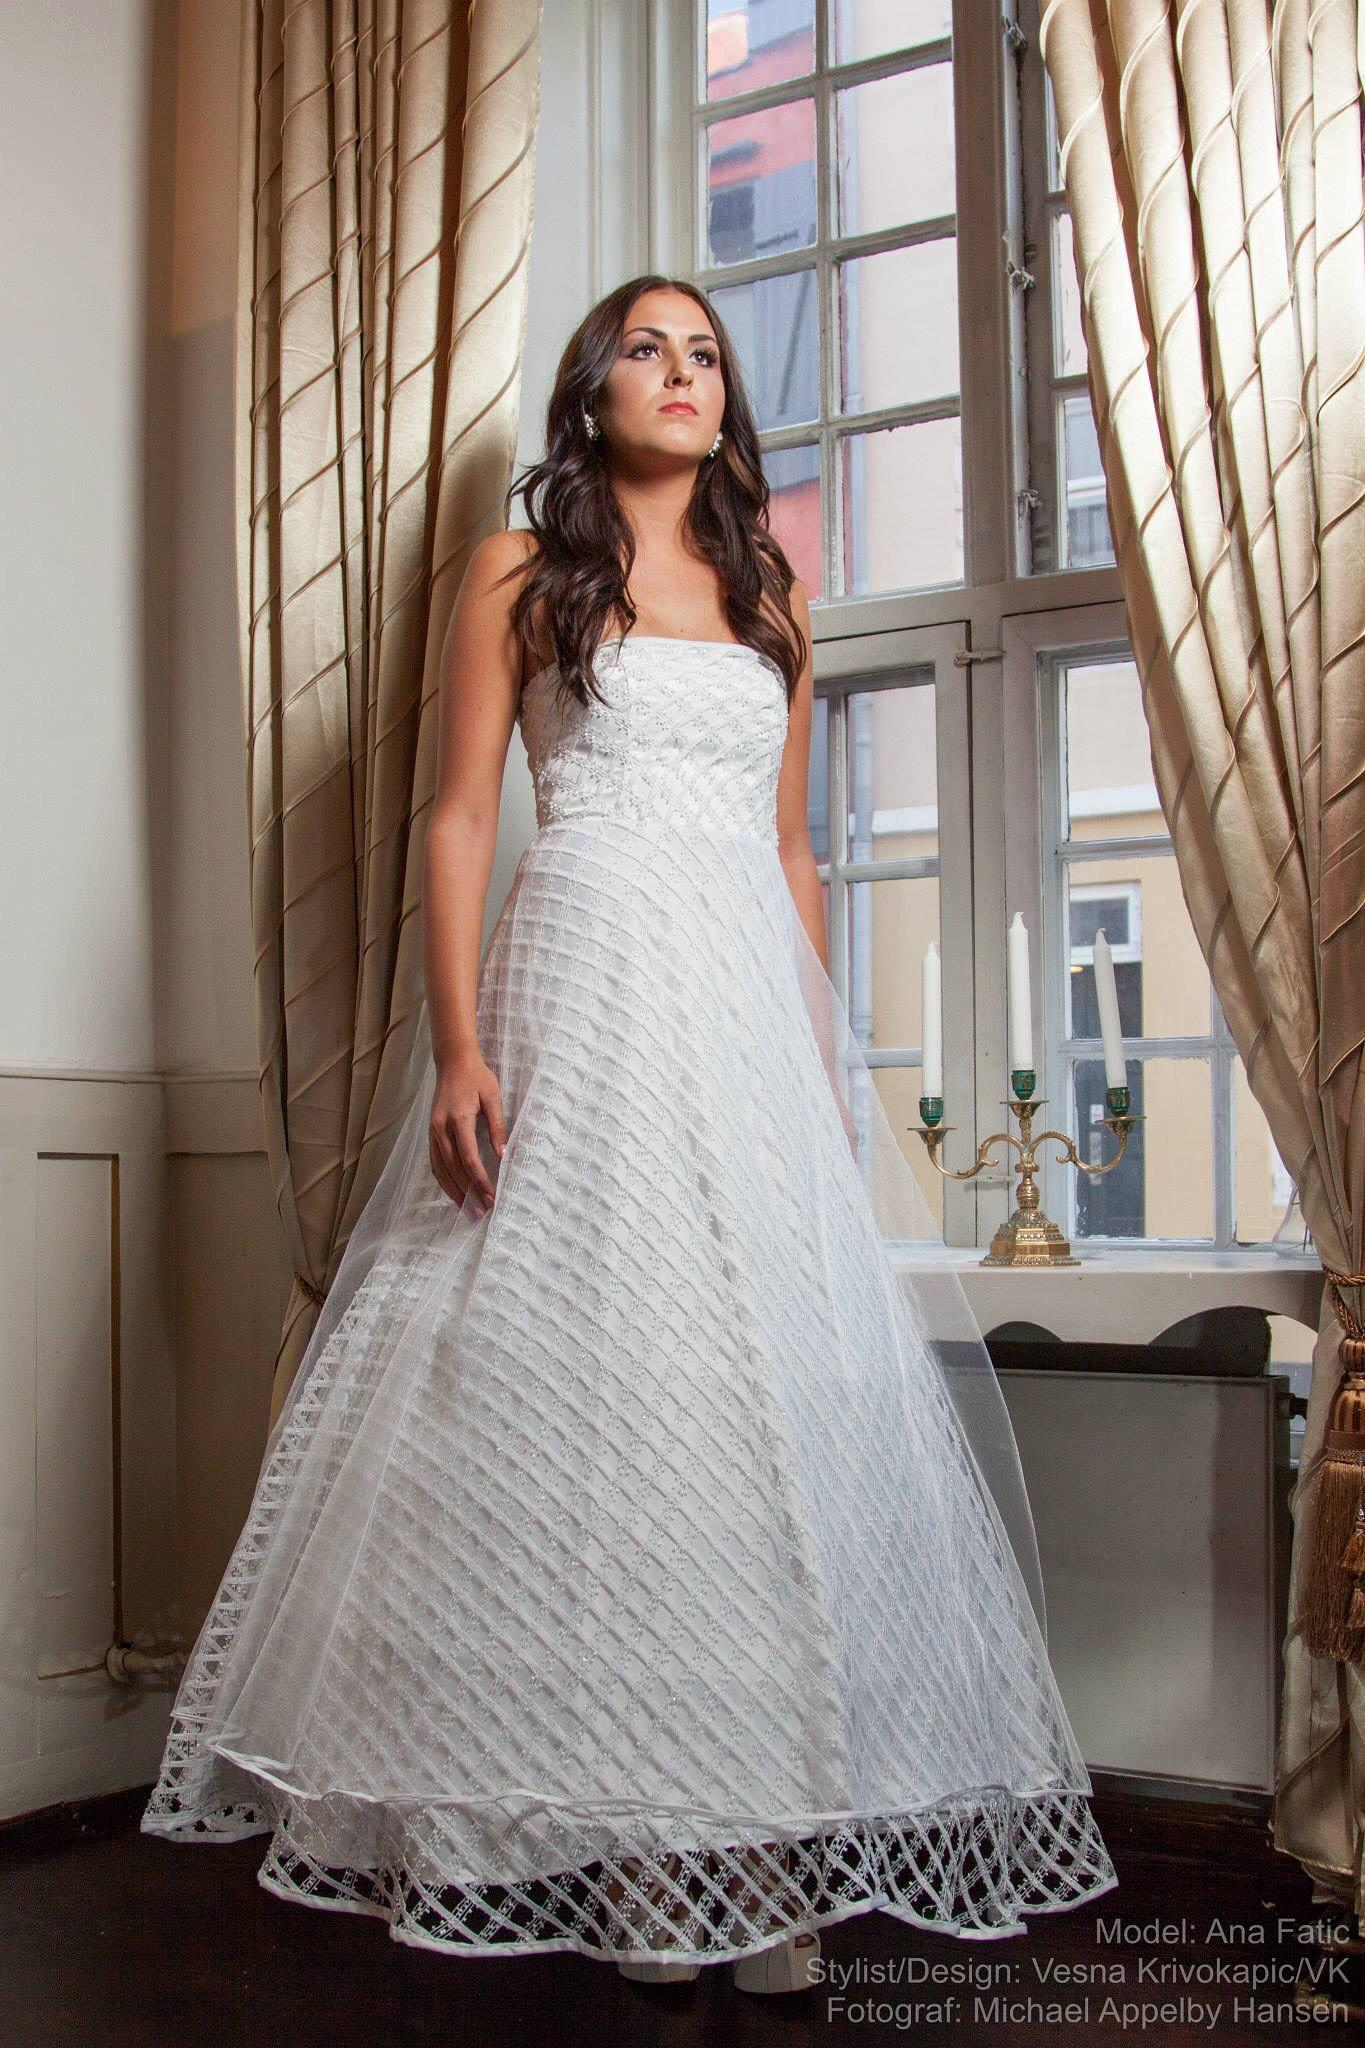 Brides Dress by Michael Appelby Hansen